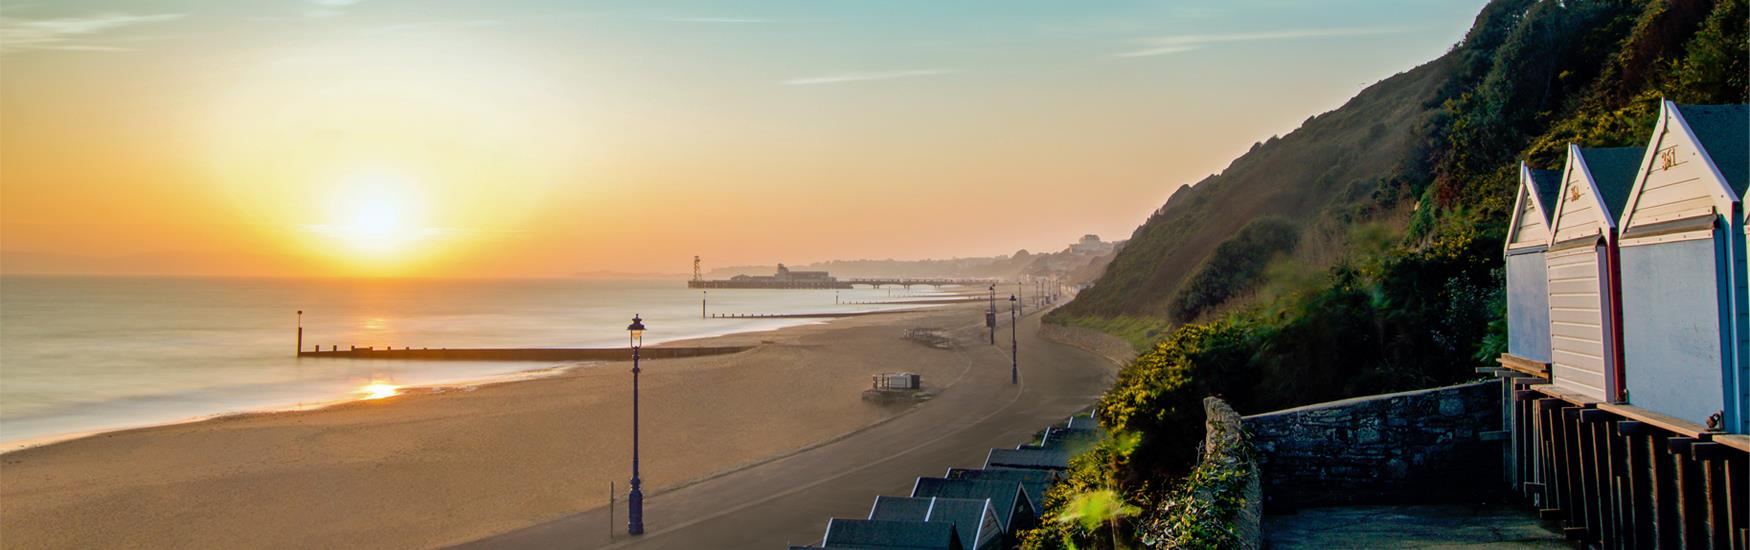 Enjoy Autumn in beautiful Bournemouth